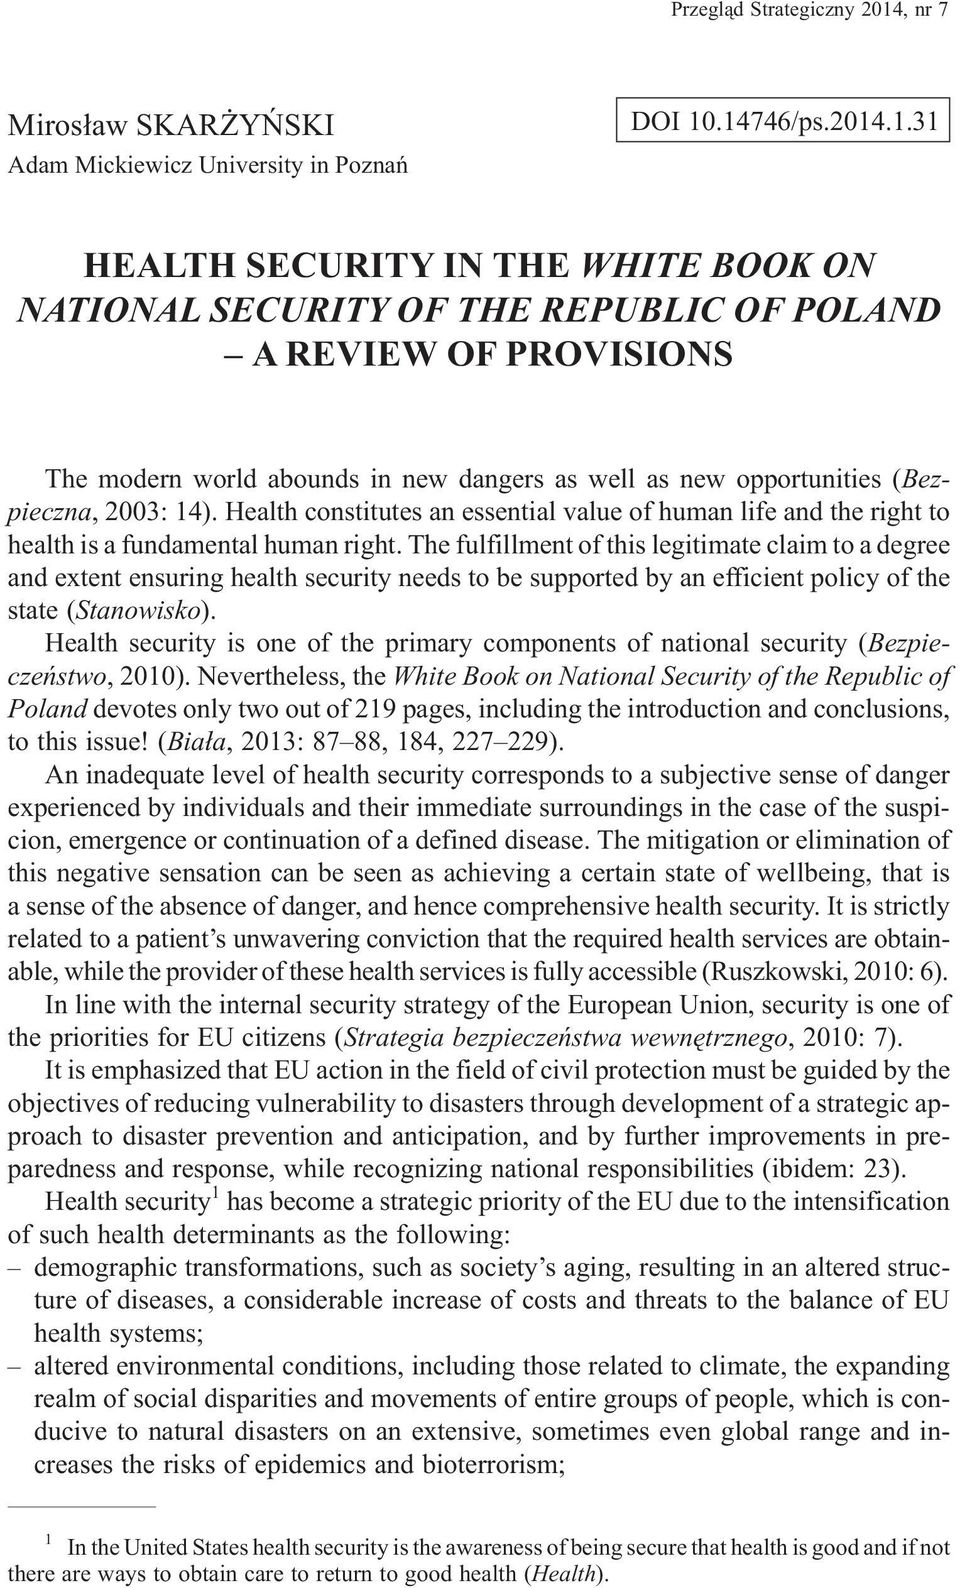 .14746/ps.2014.1.31 HEALTH SECURITY IN THE WHITE BOOK ON NATIONAL SECURITY OF THE REPUBLIC OF POLAND A REVIEW OF PROVISIONS The modern world abounds in new dangers as well as new opportunities